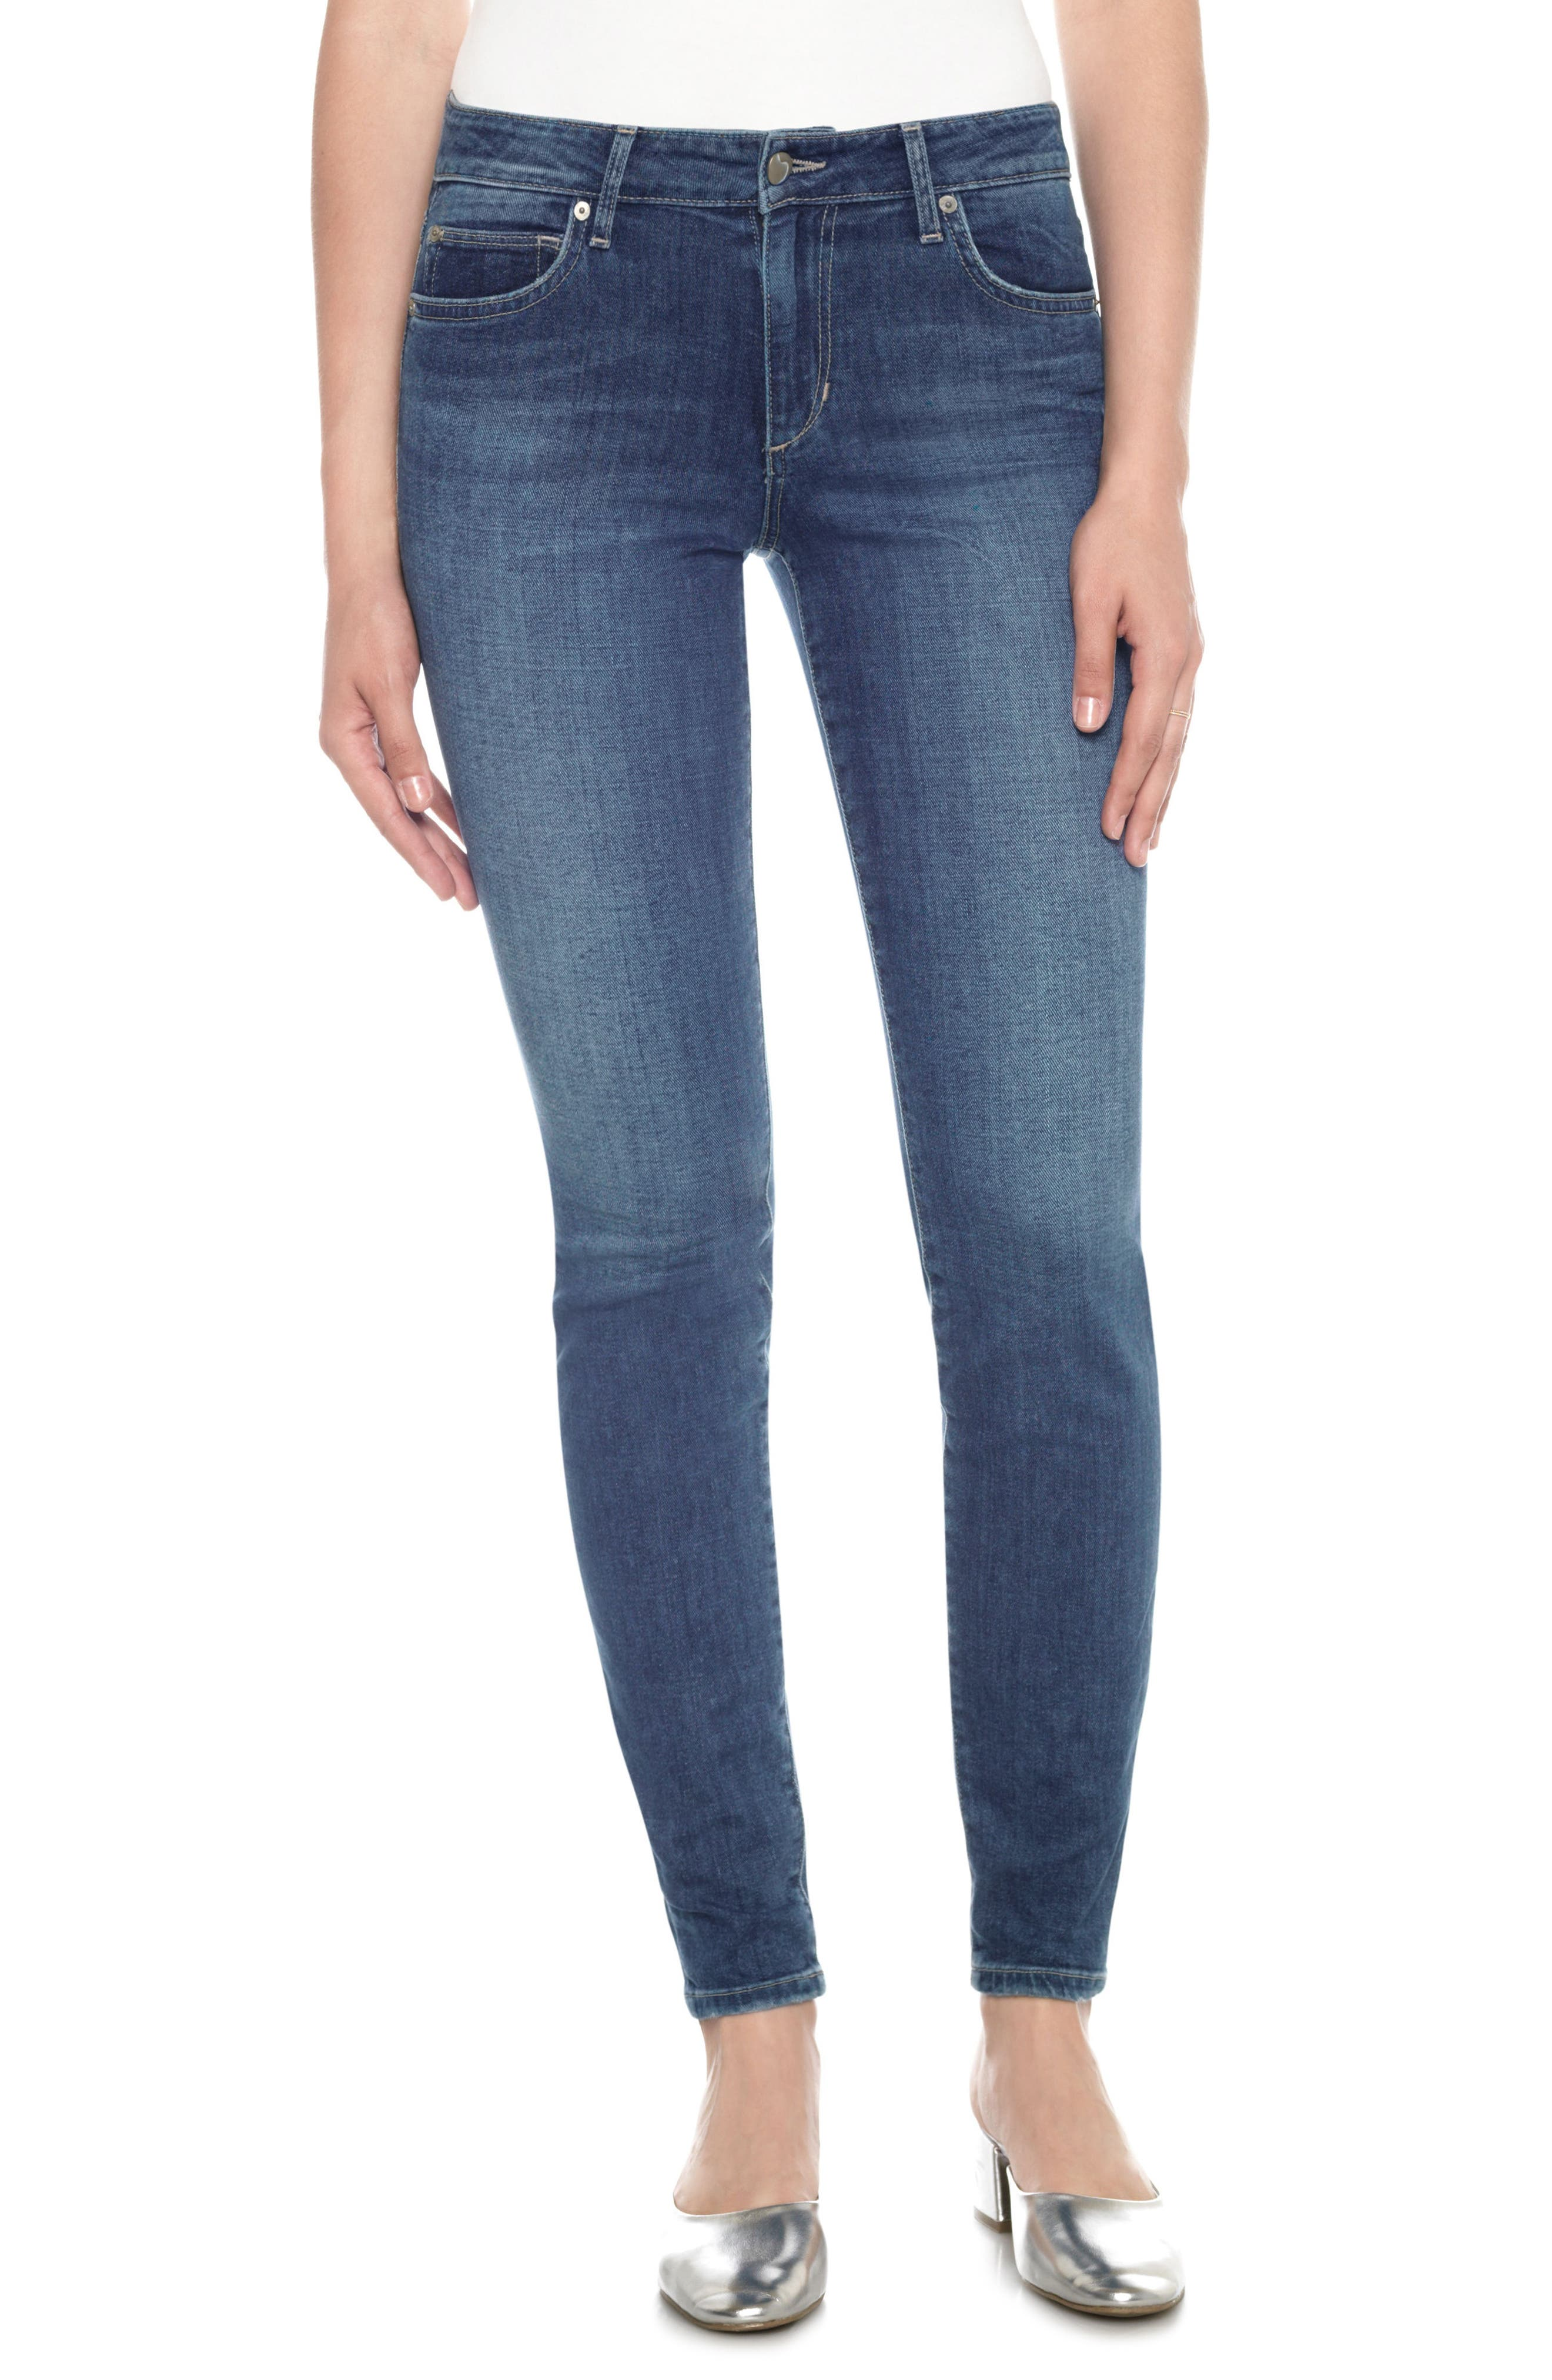 Honey Curvy Skinny Jeans,                         Main,                         color, 411